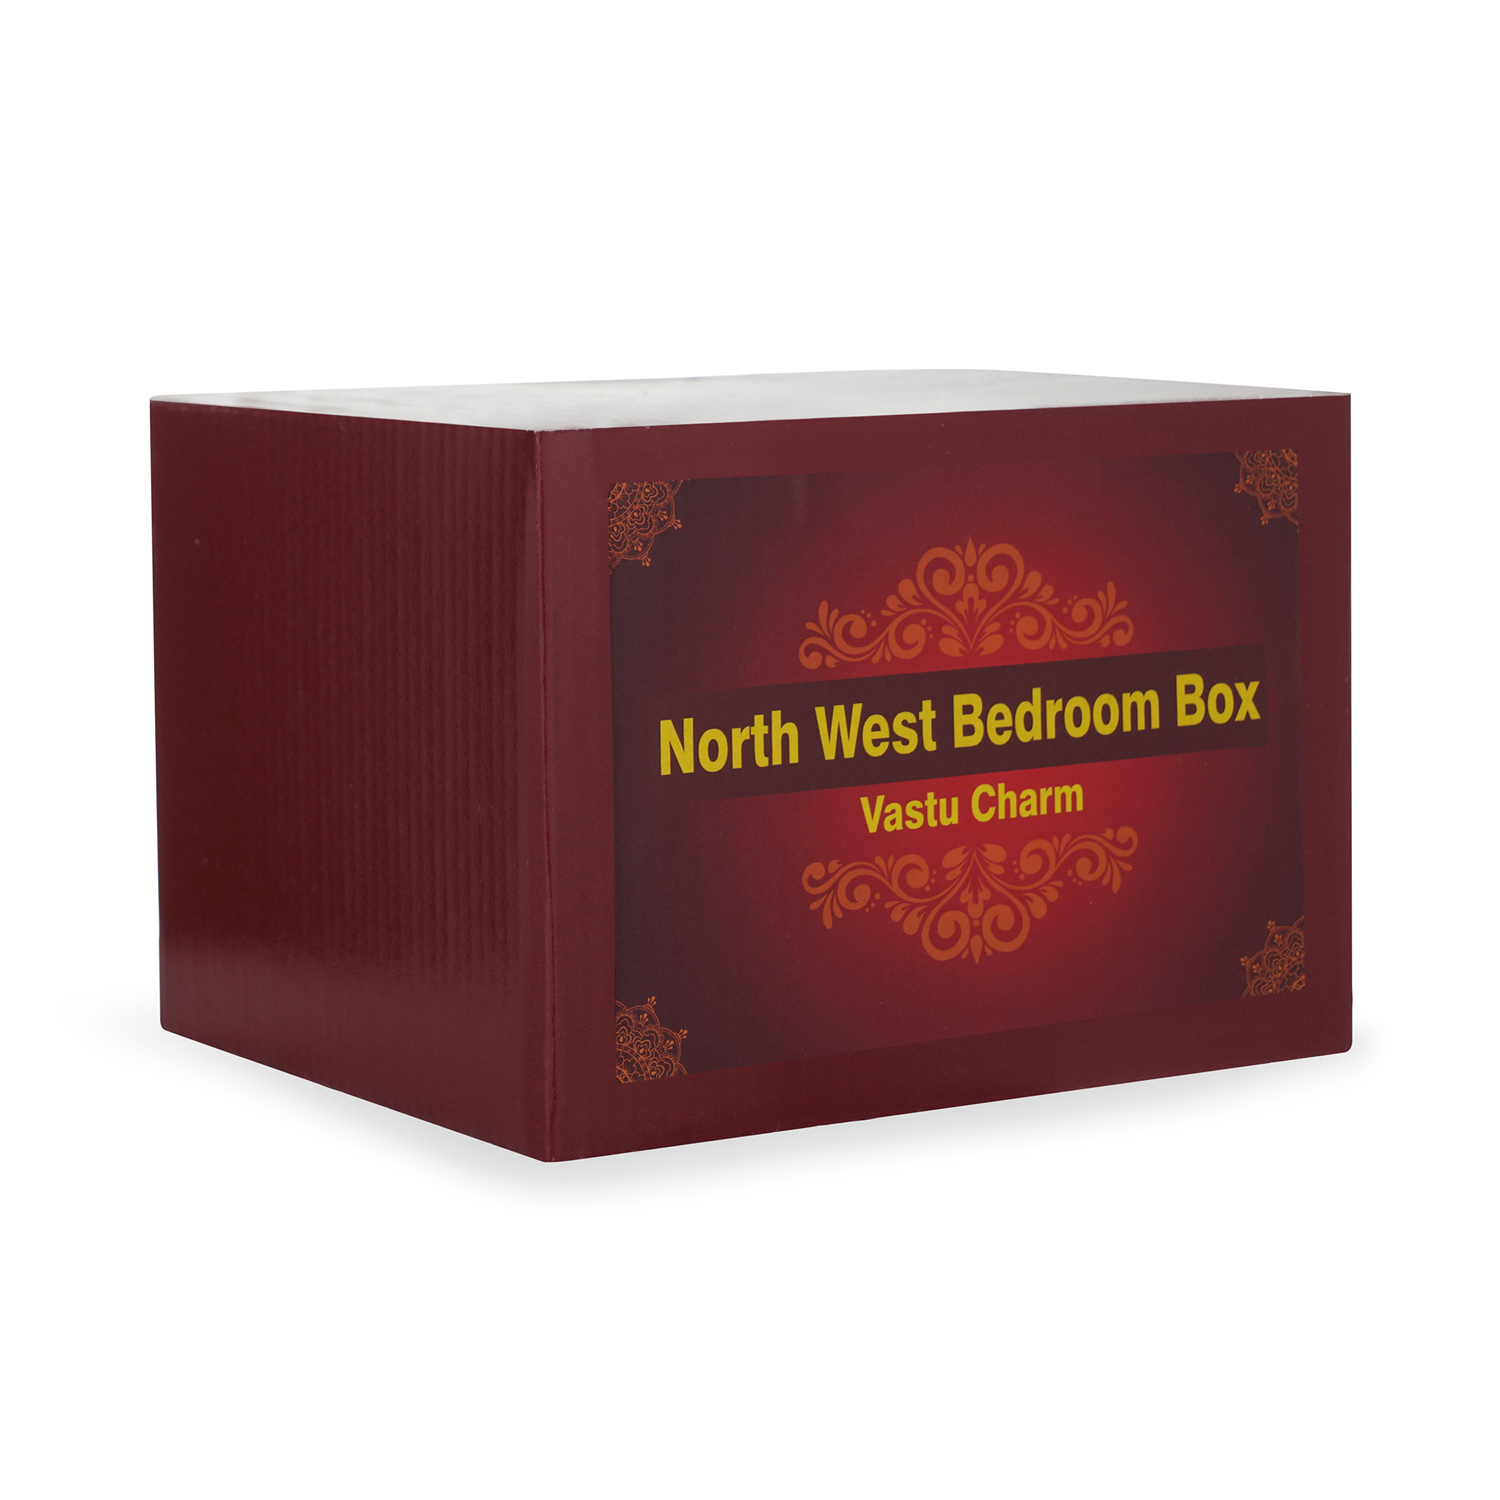 NORTH WEST BEDROOM BOX